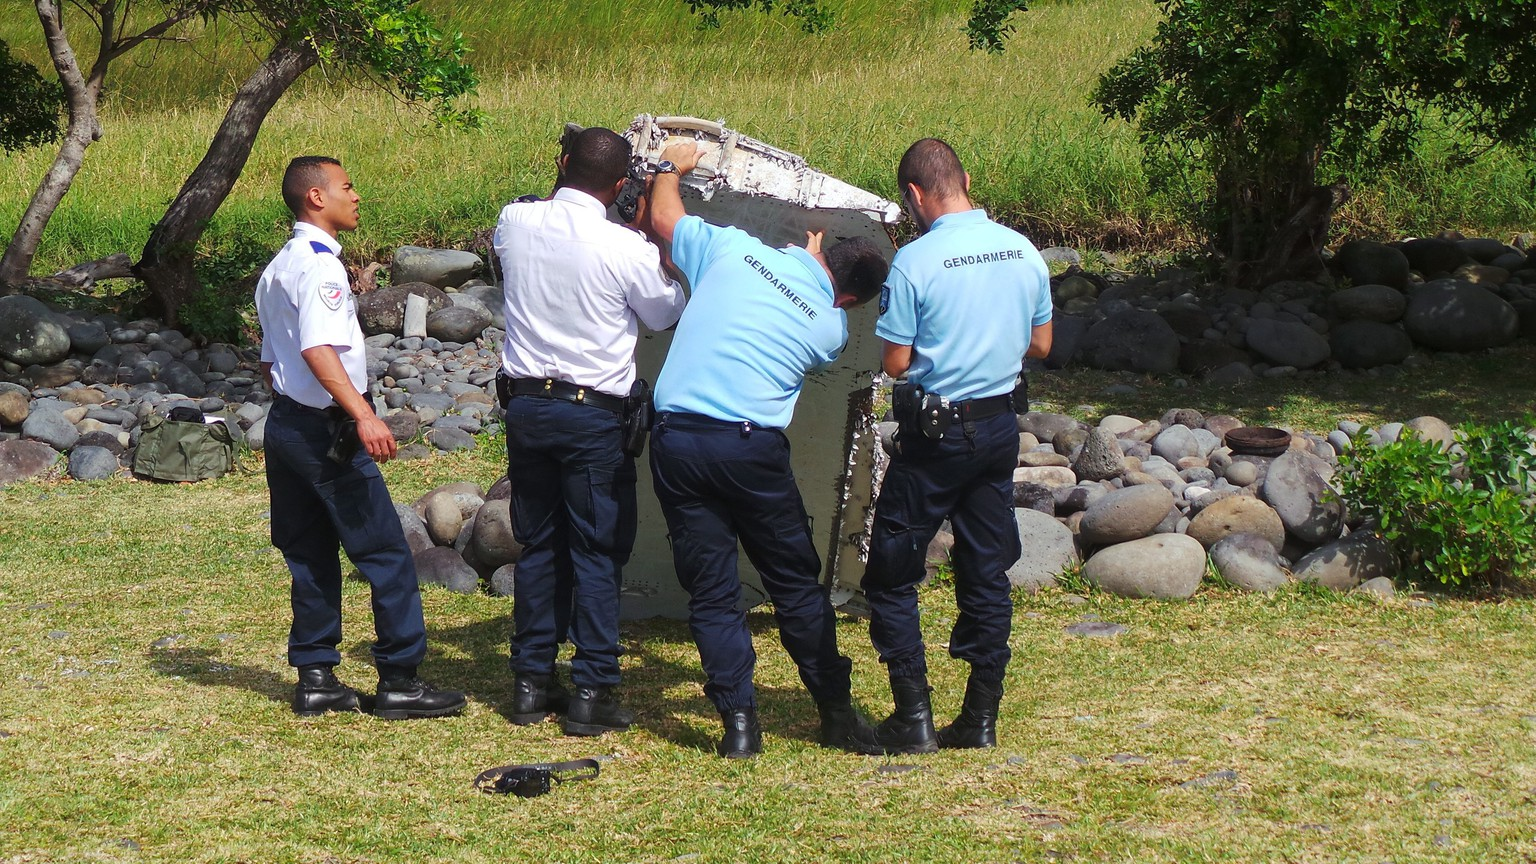 epa04866272 A picture made available 30 July 2015 shows members of French Gendarmerie and local authorities checking a piece of debris from an unidentified aircraft apparently washed ashore in Saint-Andre de la Reunion, eastern La Reunion island, France, 29 July 2015. A Malaysian government team is being dispatched to the French island of Reunion in the Indian Ocean, where newly found aircraft wreckage awakened speculation over flight MH370, which went missing last year with 239 people aboard.  EPA/ZINFOS974